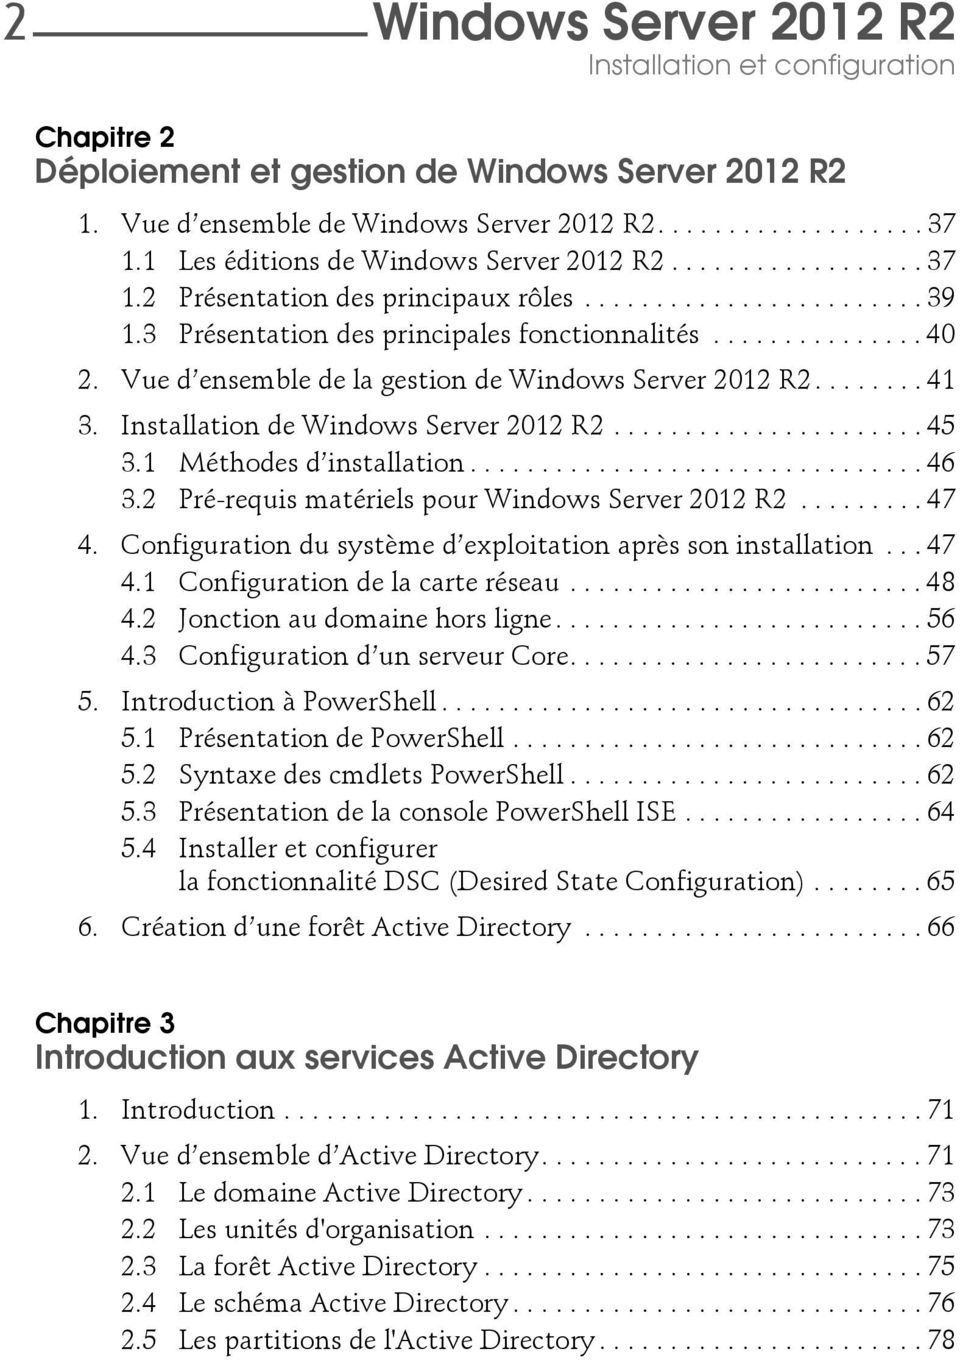 Vue d ensemble de la gestion de Windows Server 2012 R2........ 41 3. Installation de Windows Server 2012 R2...................... 45 3.1 Méthodes d installation................................ 46 3.